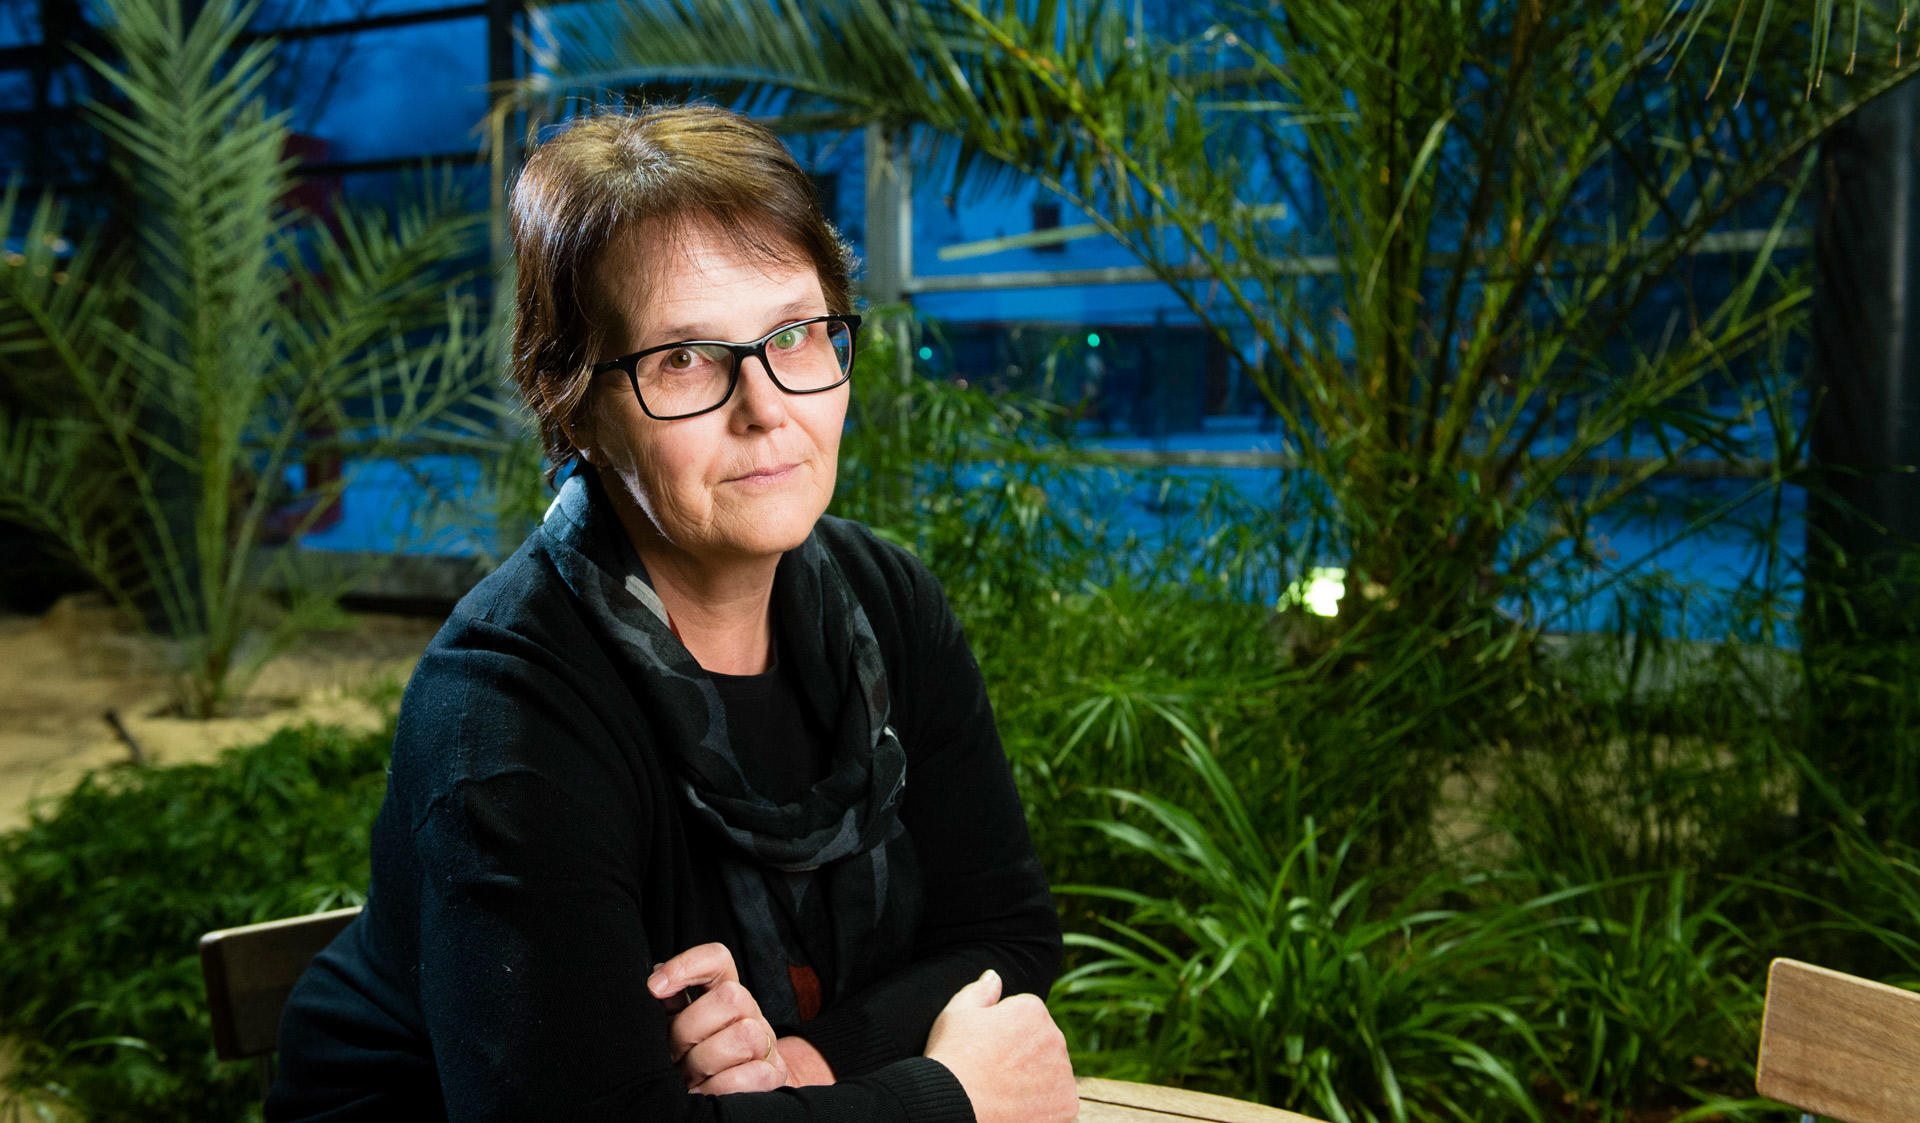 Vice-dean Laura Alakukku, Faculty of Agriculture and Forestry, University of Helsinki